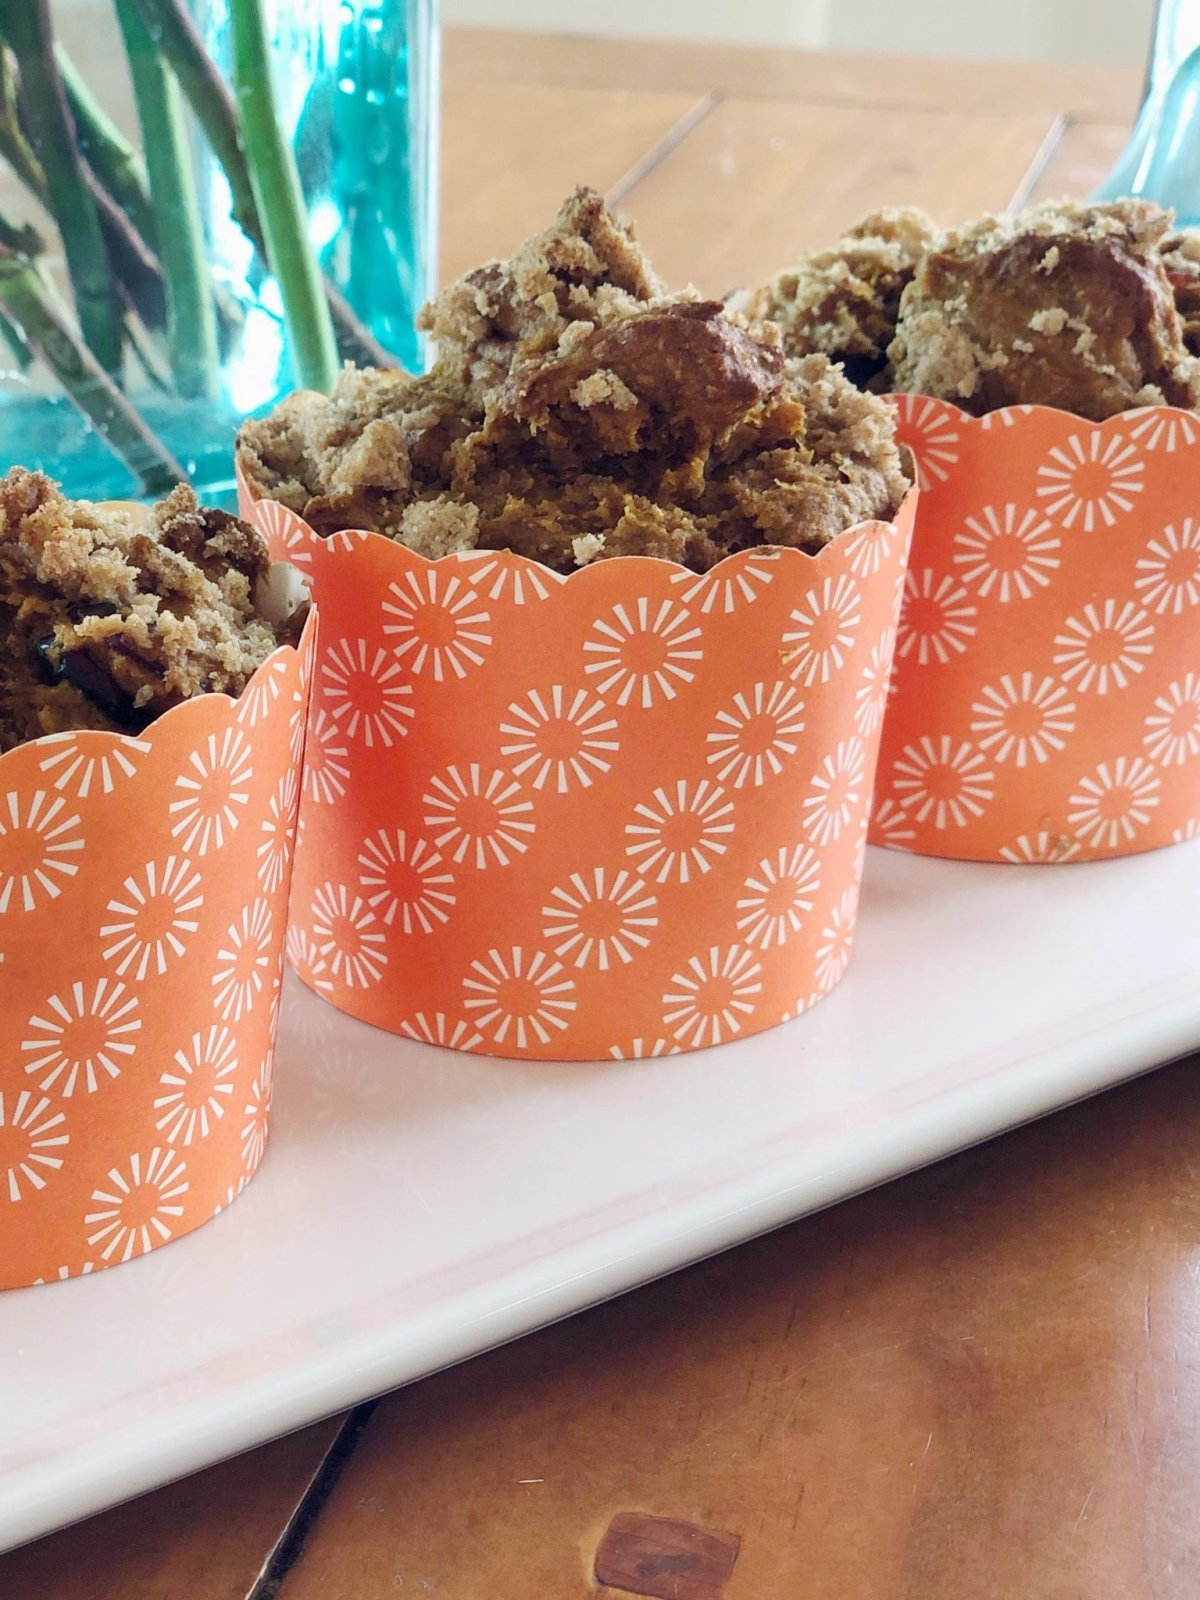 These pumpkin muffins with streusel toppings are delicious. They look adorable in these orange muffin cups.